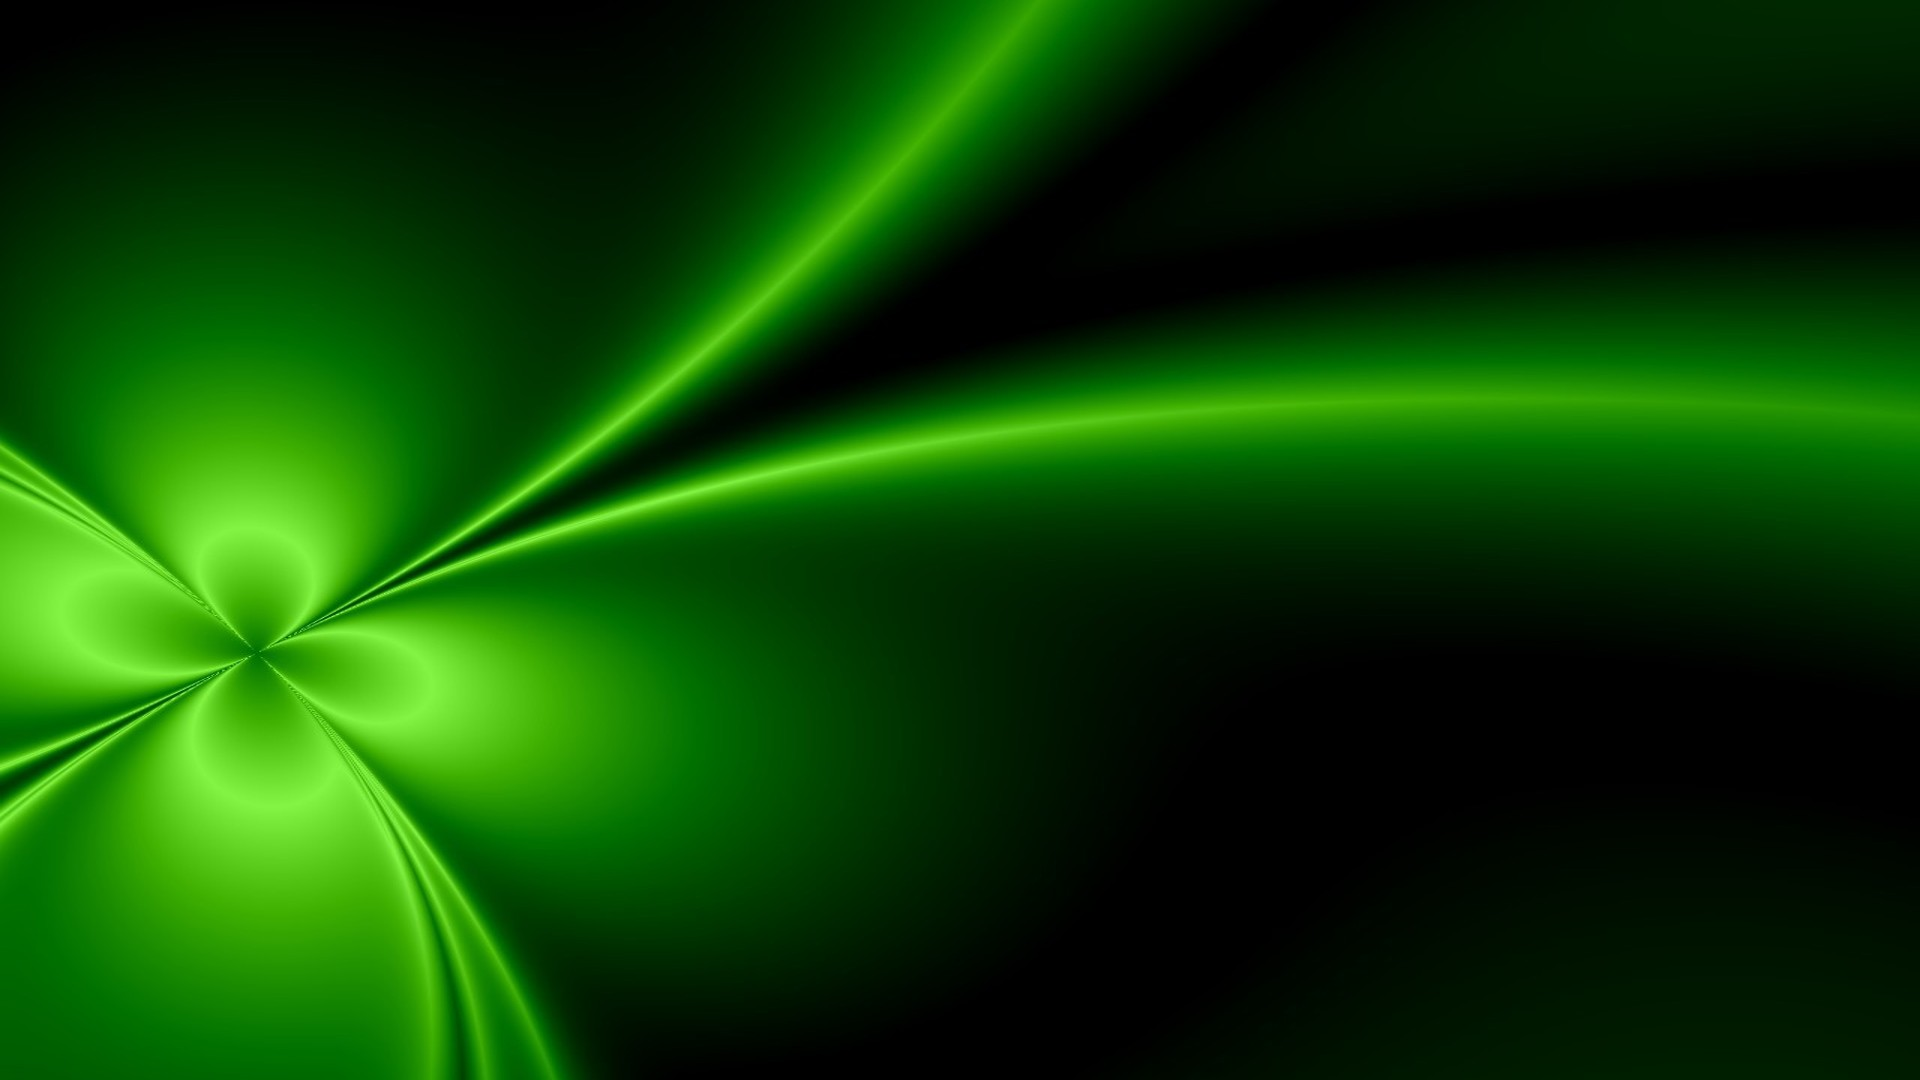 Four Leaf Clover Pictures Wallpaper Best Cool Wallpaper 1920x1080